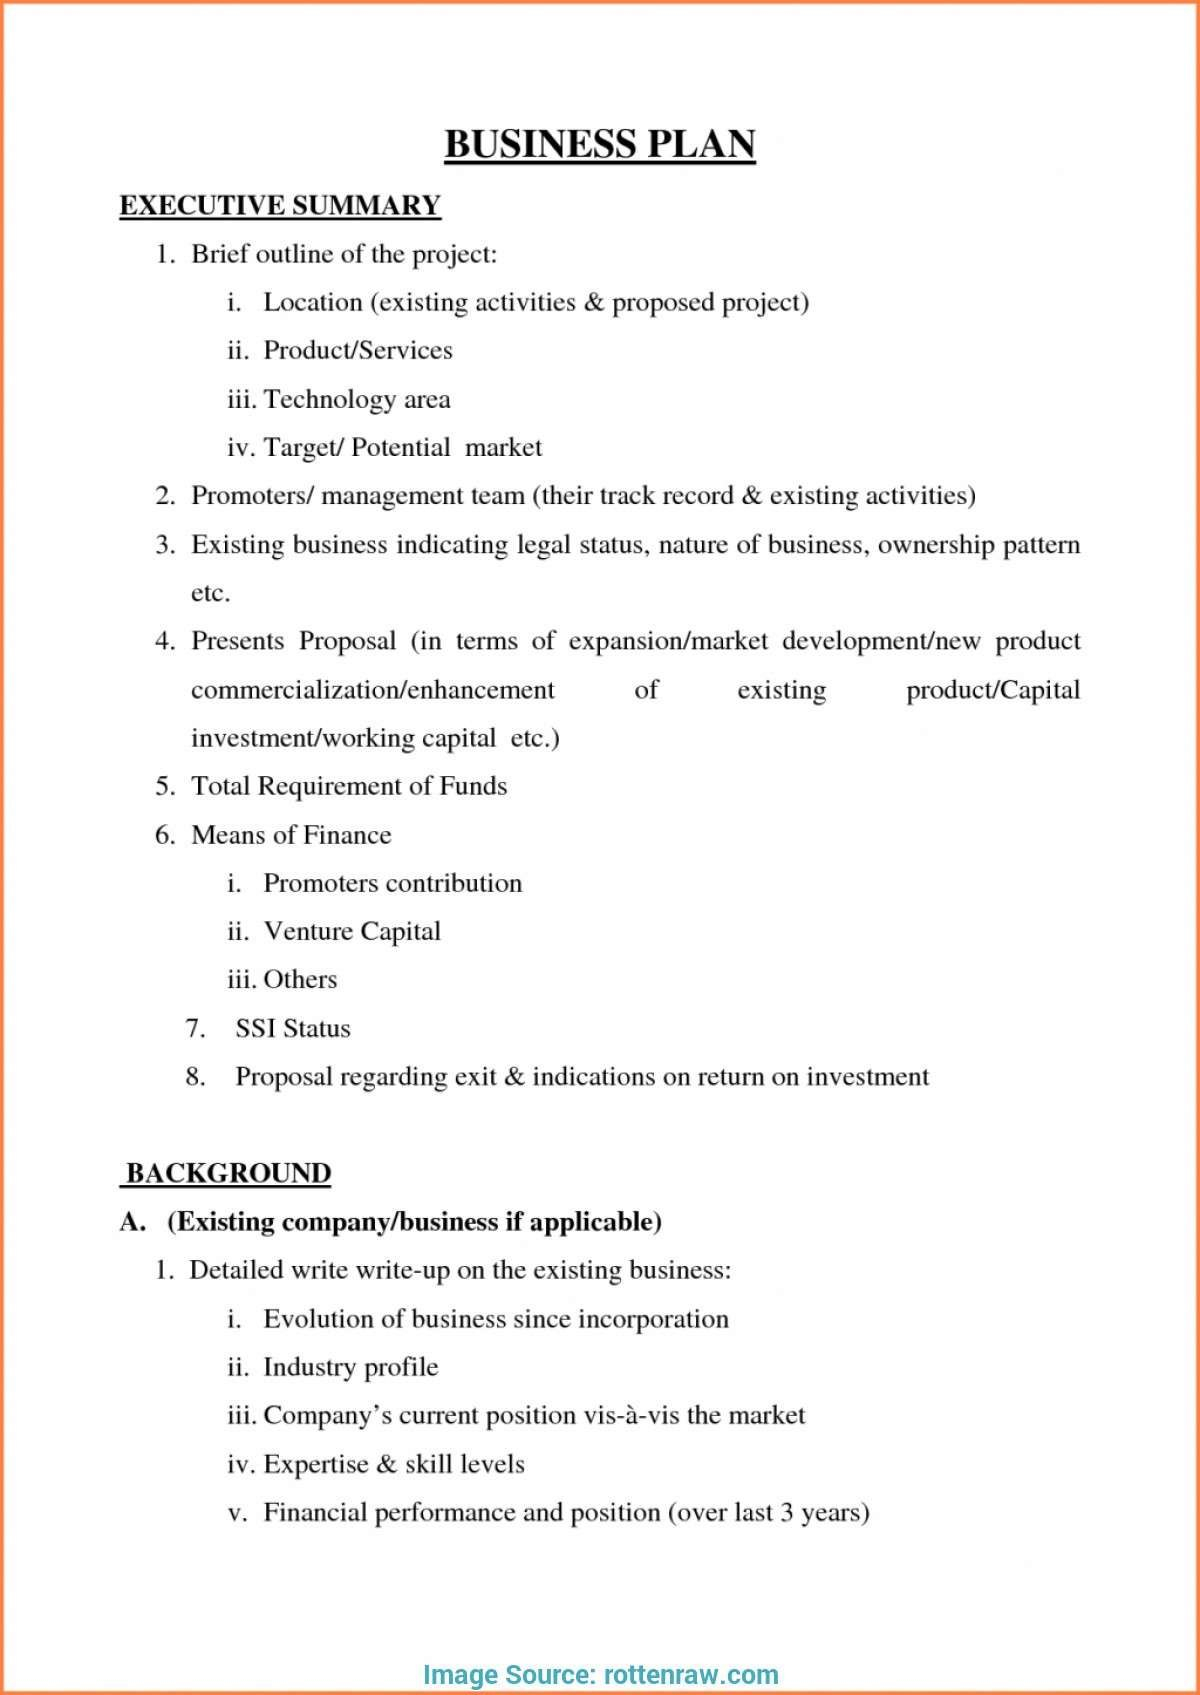 Business Plan Template For Trucking Company  Caquetapositivo Regarding Business Plan Template For Trucking Company